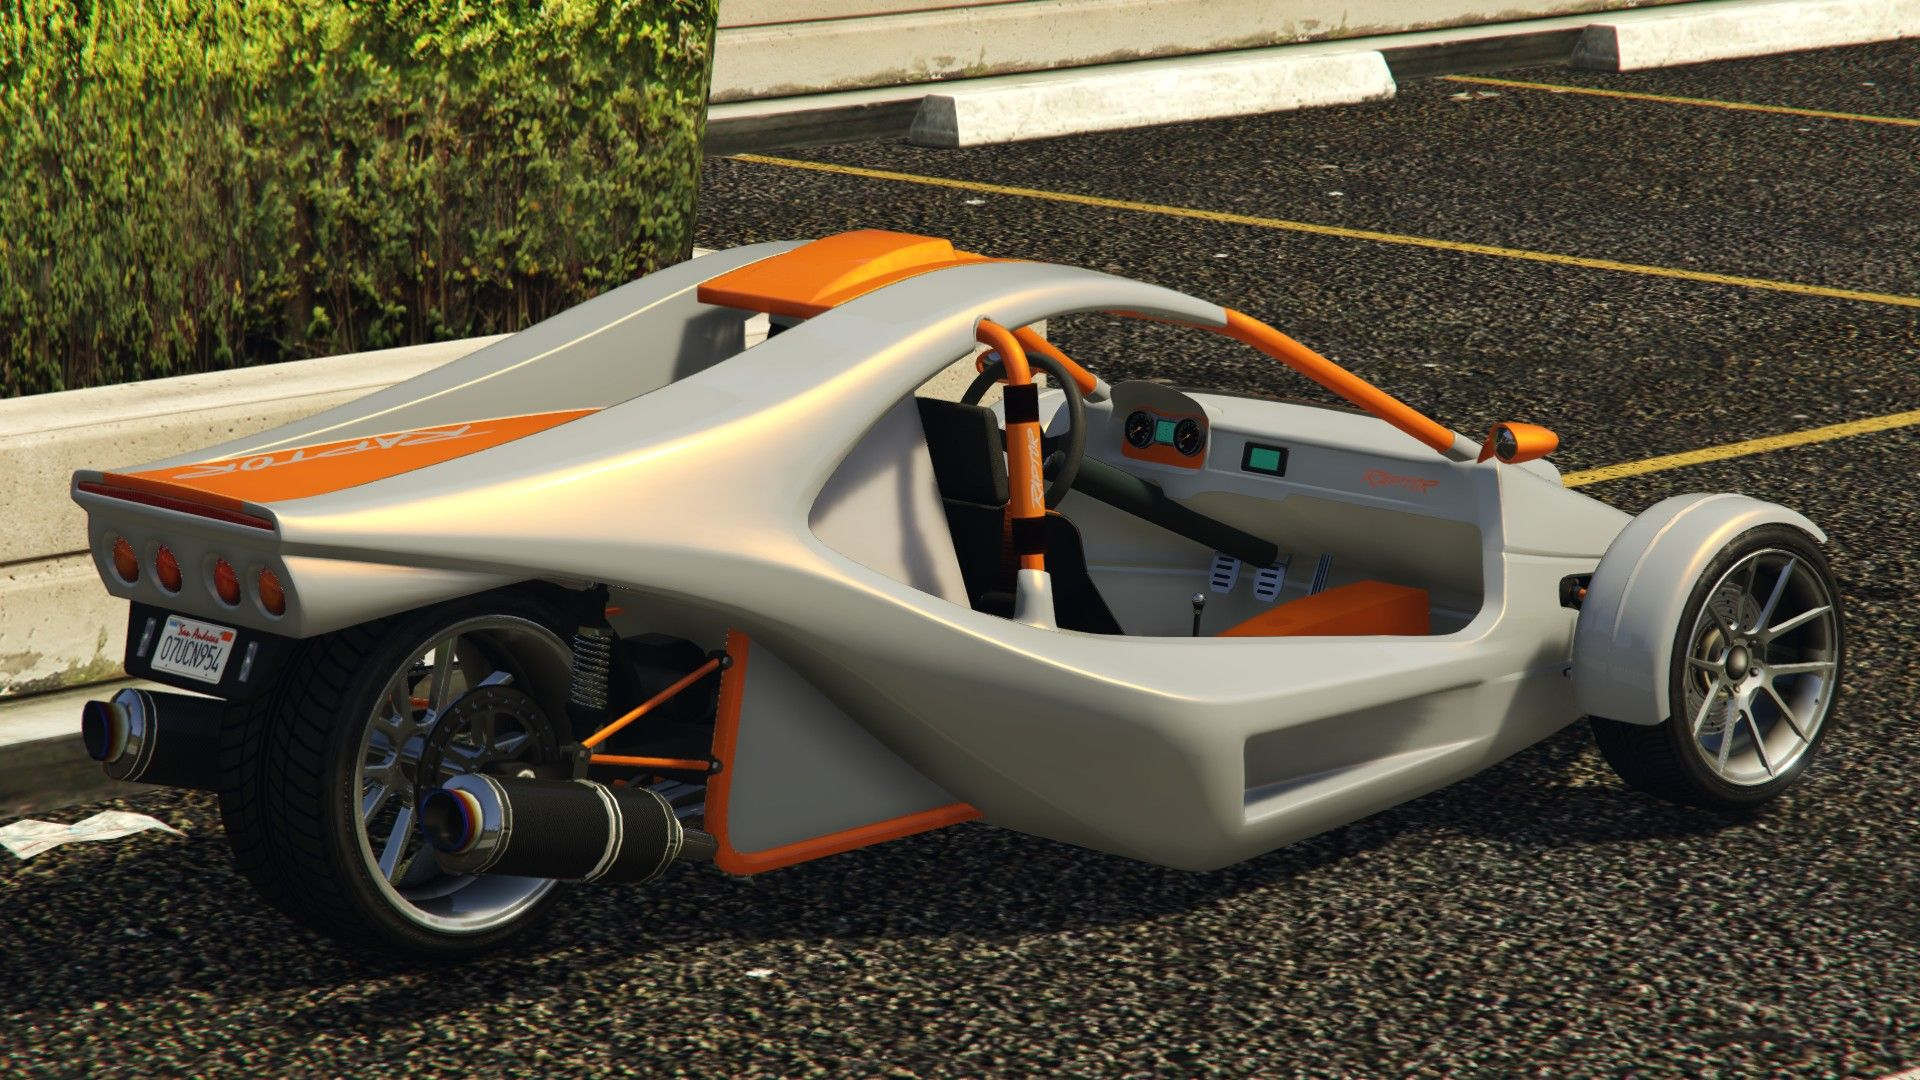 Pin by Ricardo Rodriguez on gta 5 vehicles (With images ...